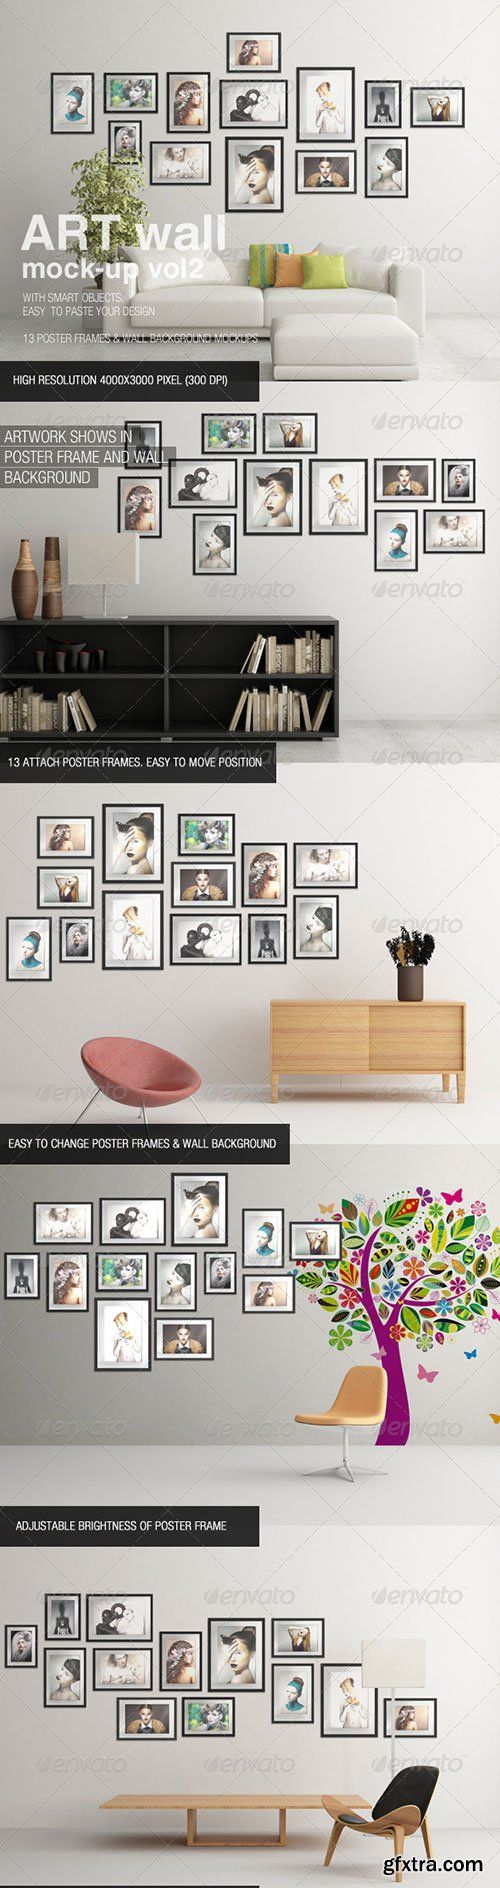 GraphicRiver - Art Wall Mock-Up Vol.2 » Graphic GFX PSD Sources Stock Vector Image Tutorials Download